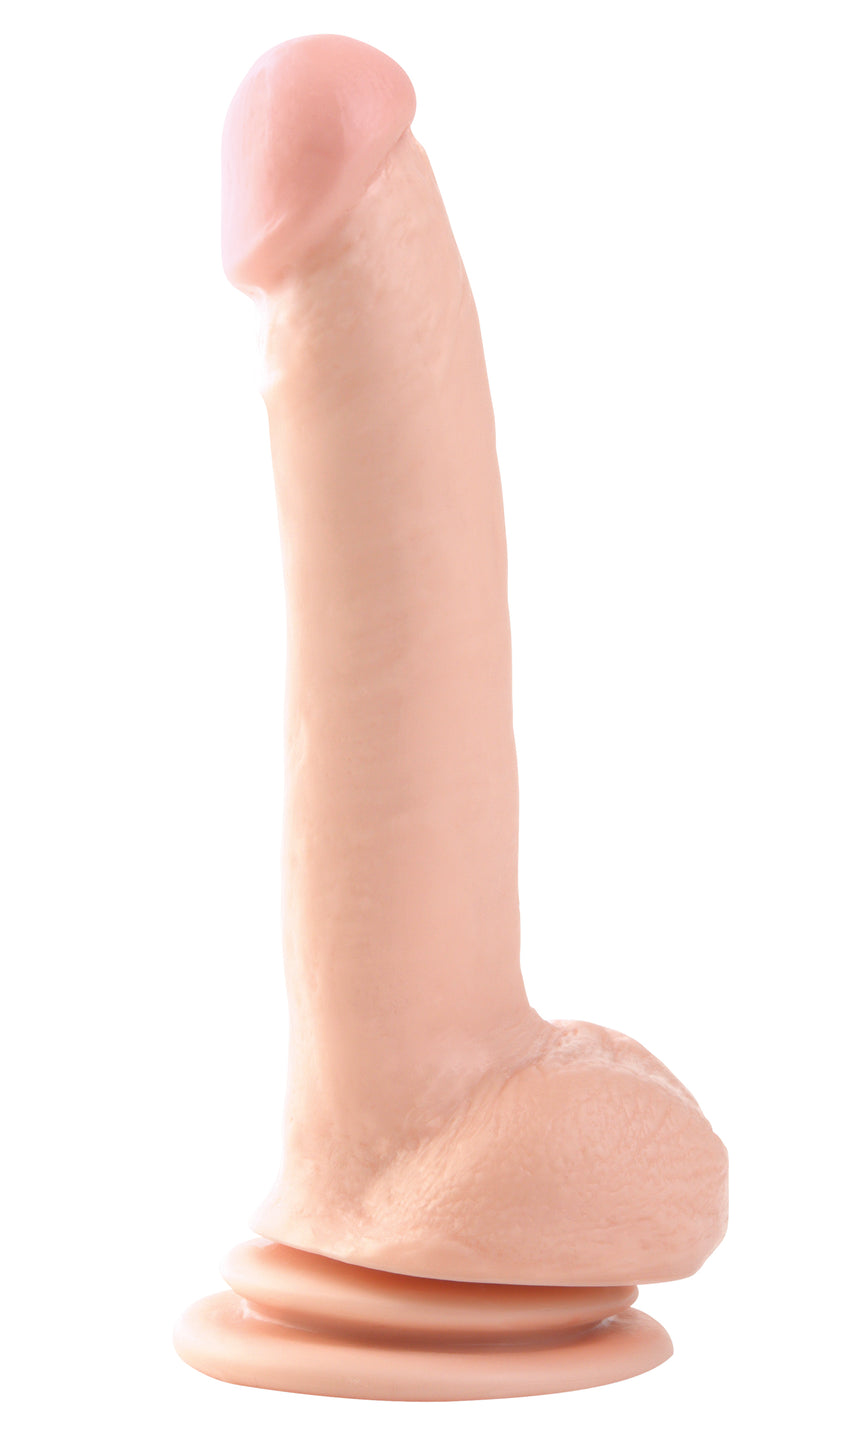 Basix Rubber Works 9 Inch Suction Cup Dong - Flesh